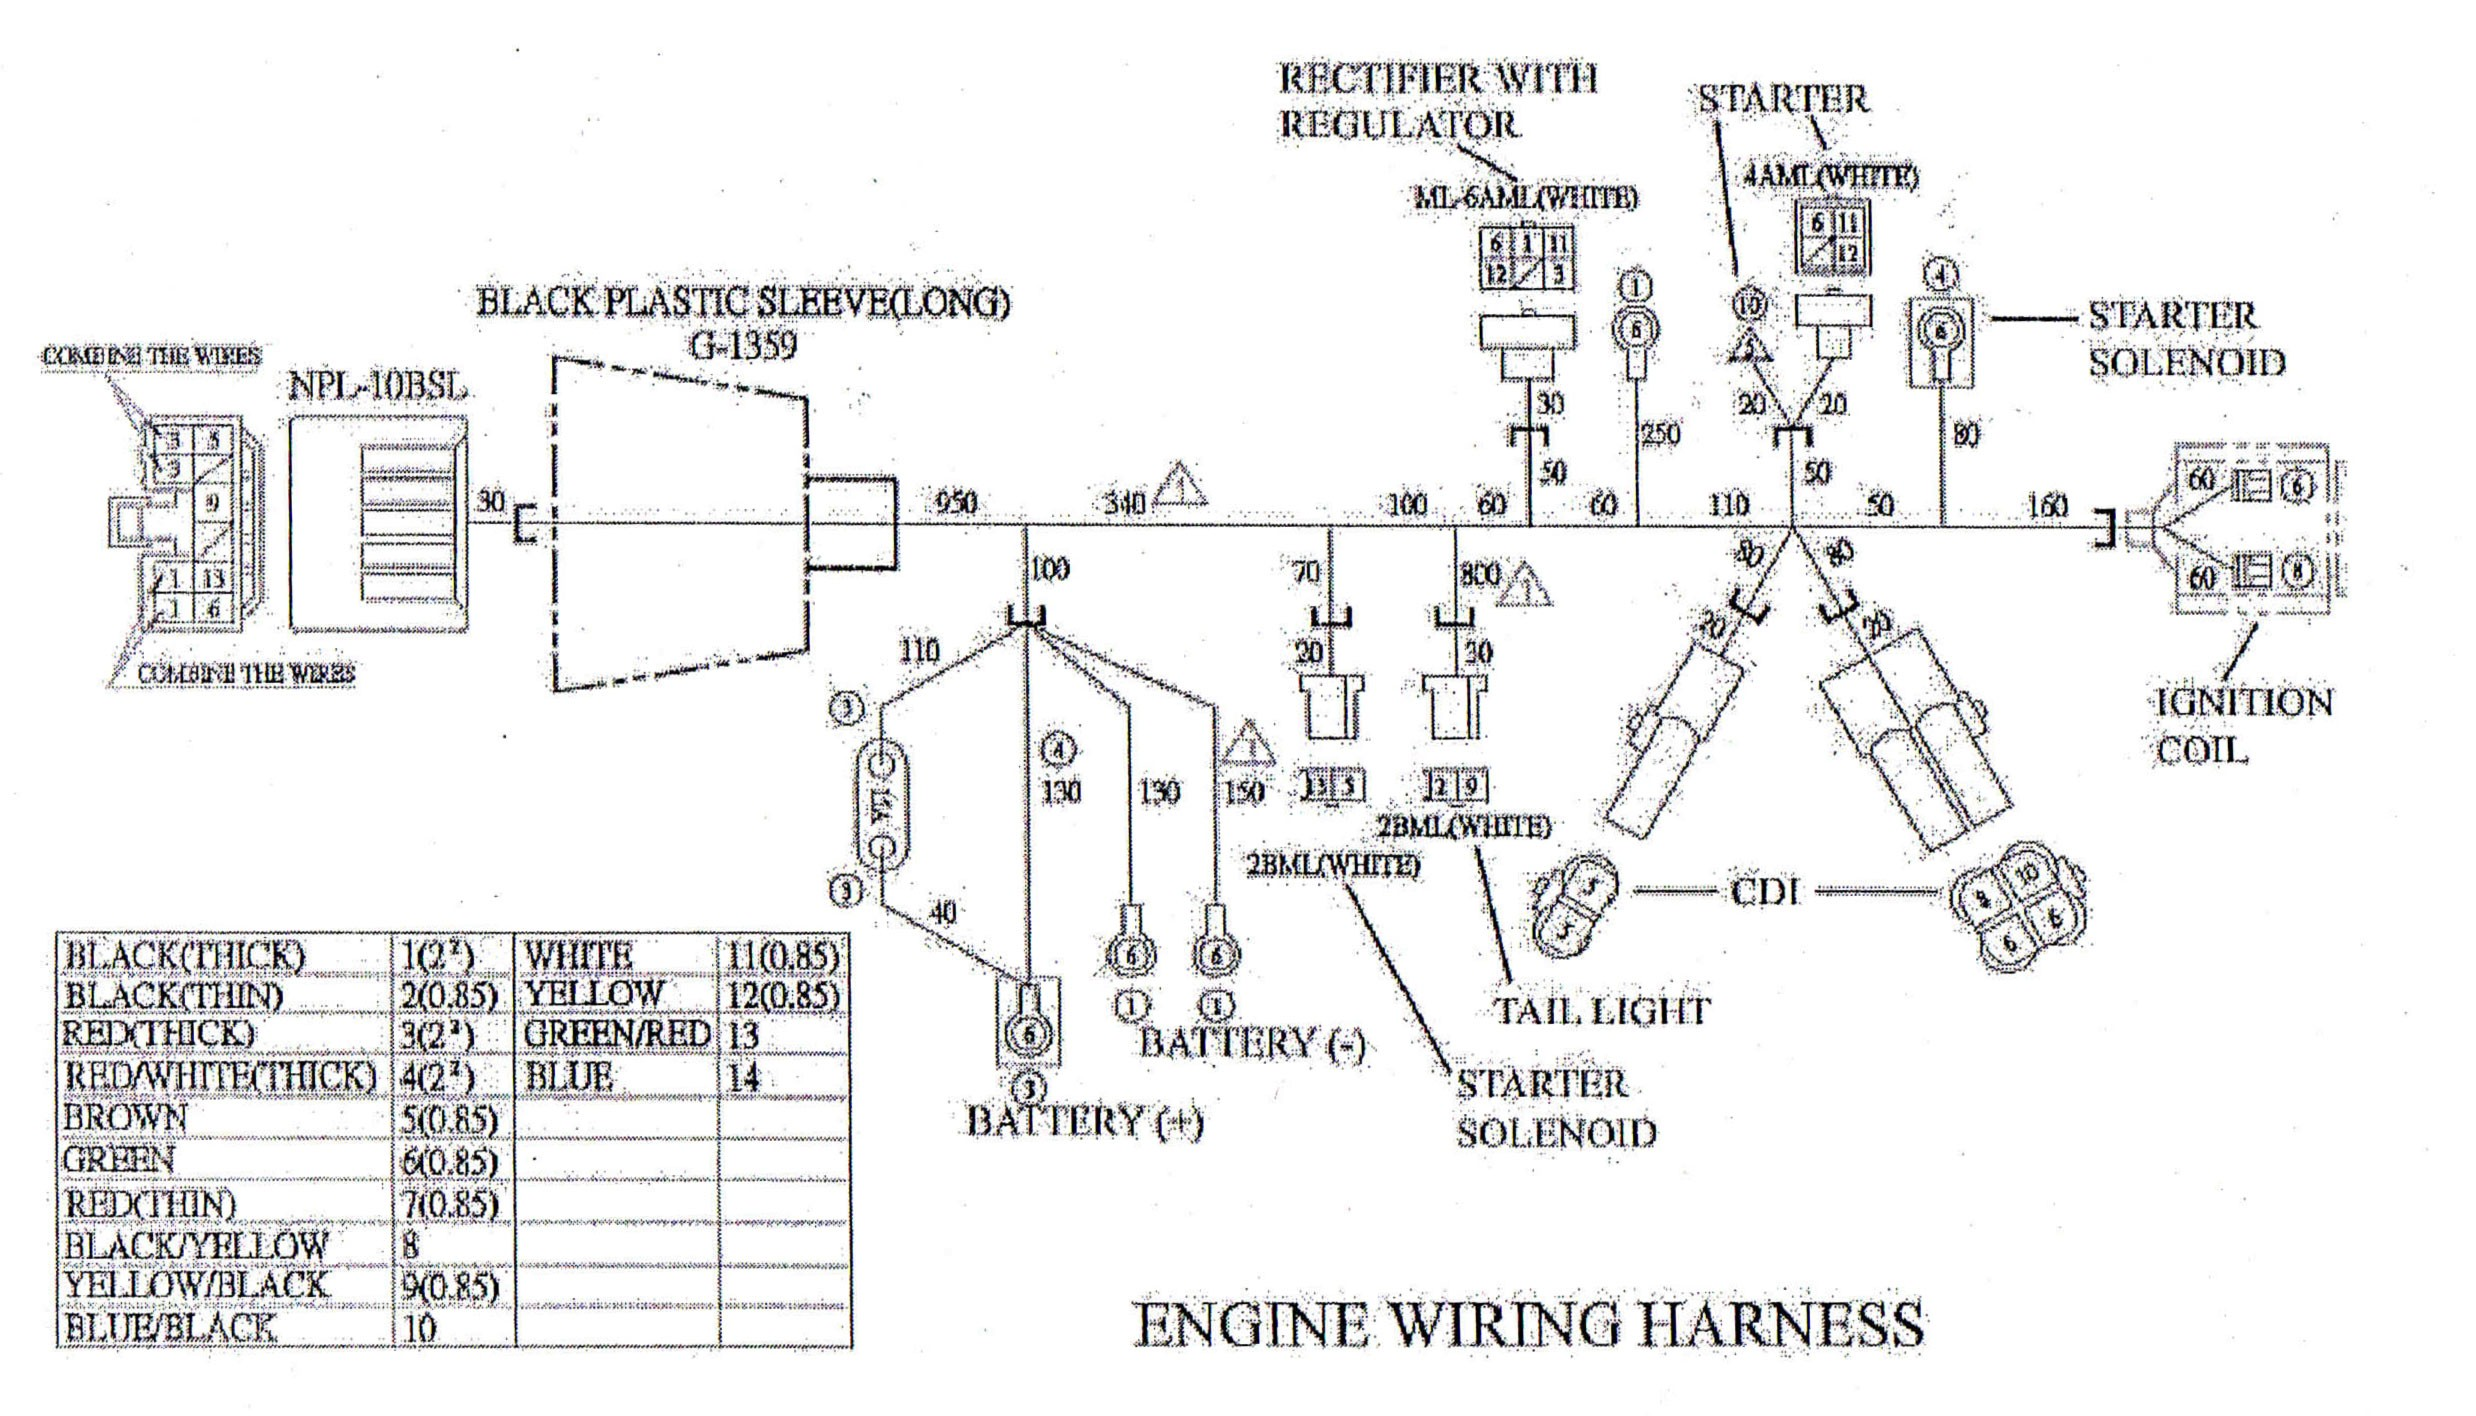 Howhit 150cc Engine Diagram Gy6 Wiring Diagram – Banksbankingfo – Wiring Diagram Collection Of Howhit 150cc Engine Diagram 50 Best Image Gy6 Go Kart Wiring Diagram Diagram Inspiration